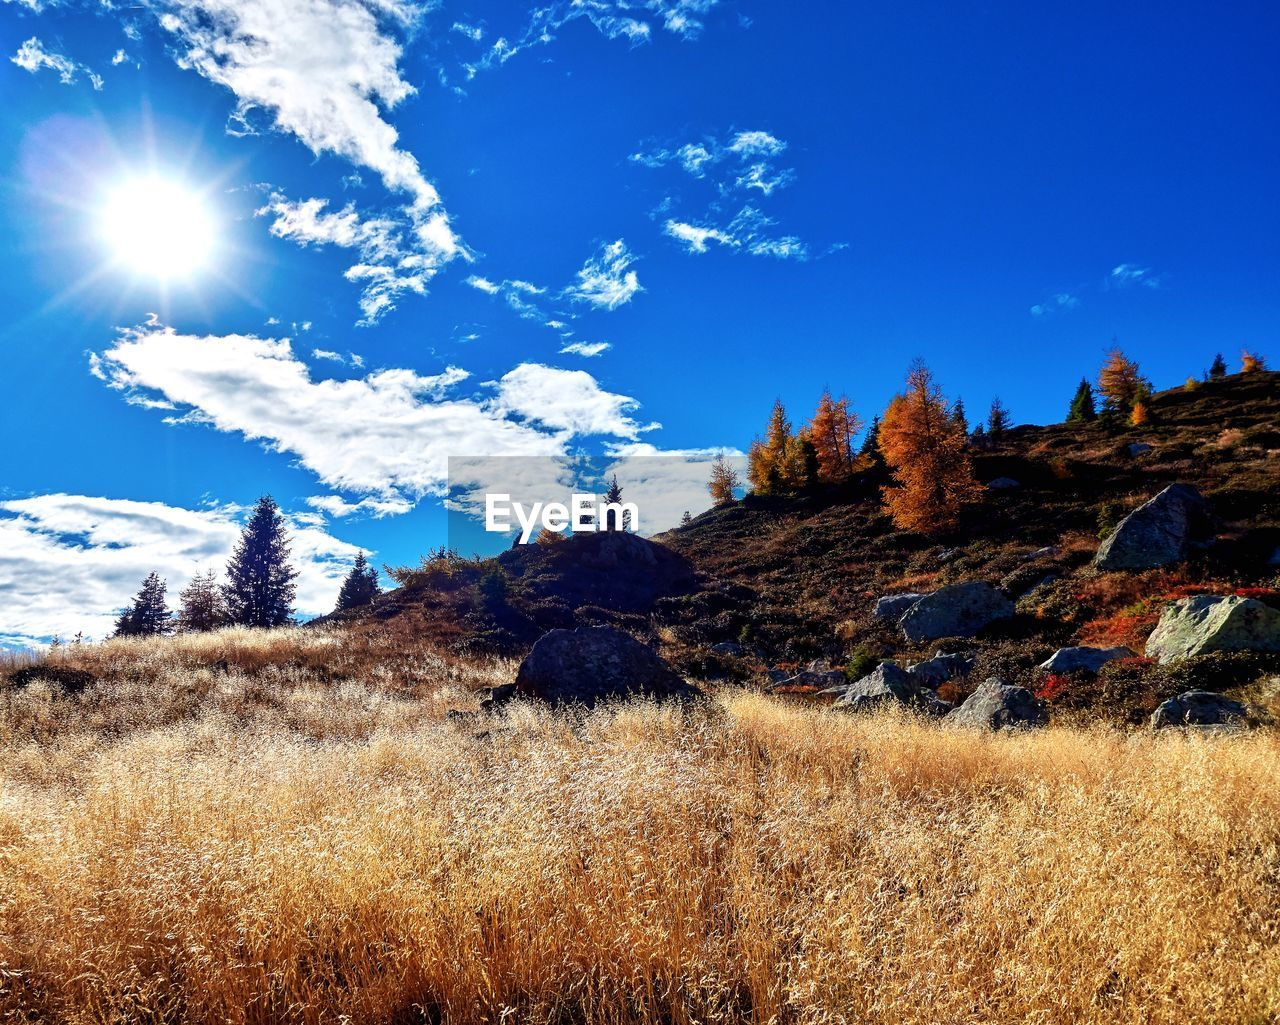 sky, plant, land, beauty in nature, tranquil scene, cloud - sky, landscape, tranquility, nature, scenics - nature, sunlight, grass, environment, field, no people, blue, non-urban scene, day, tree, mountain, outdoors, lens flare, bright